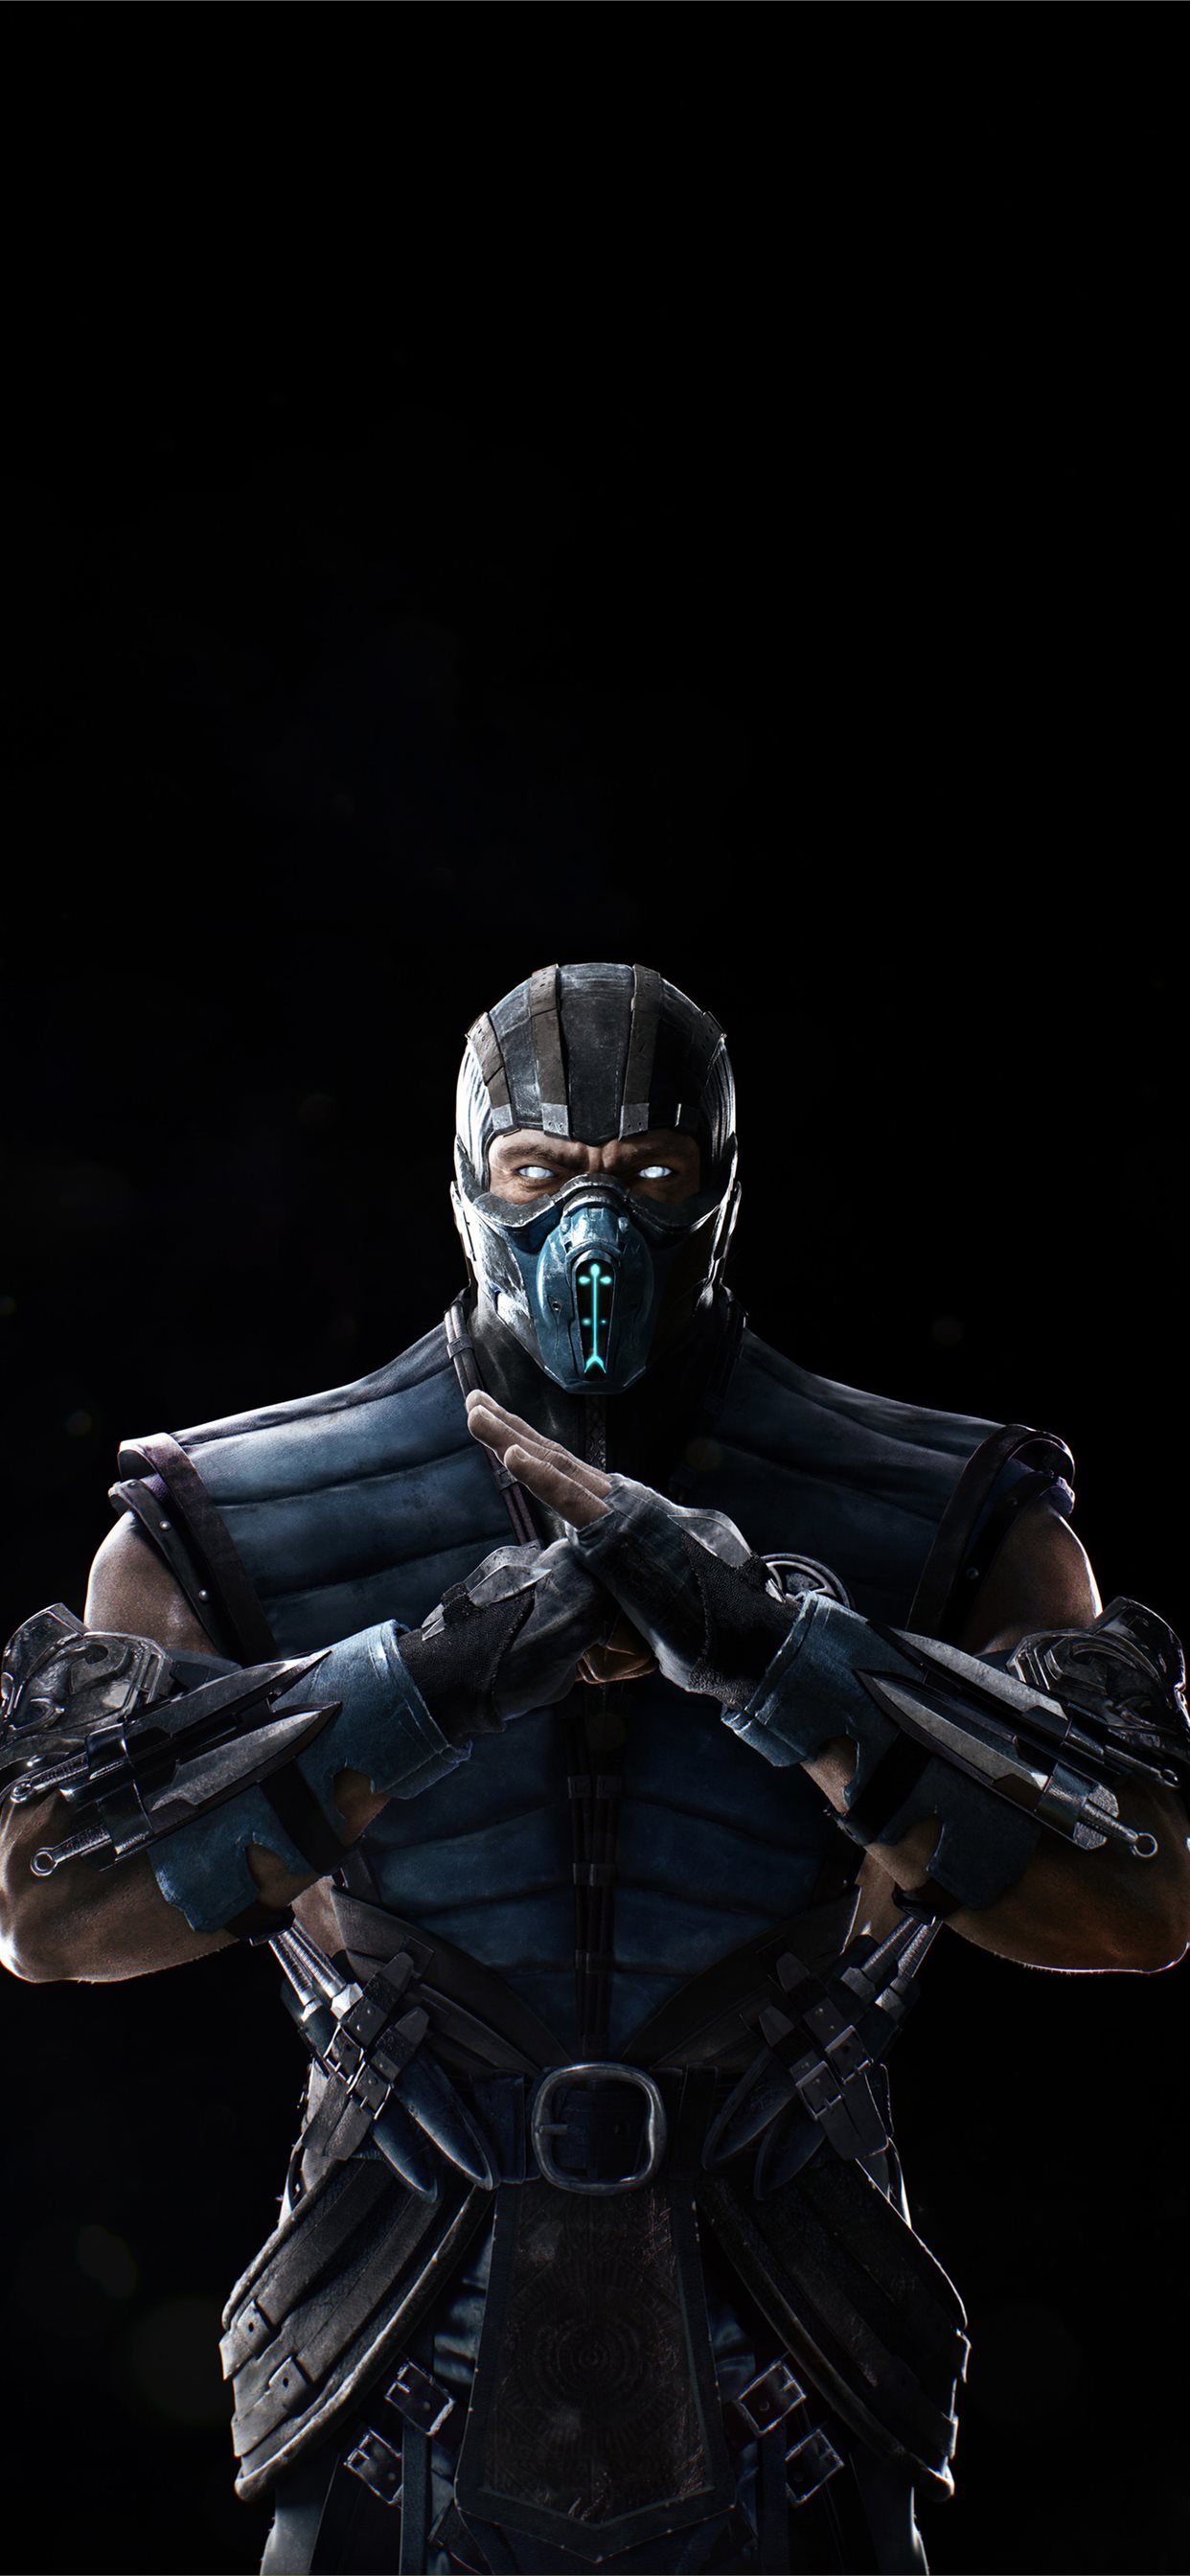 Sub Zero In Mortal Kombat 4k 2020 Iphone X Wallpapers Free Download